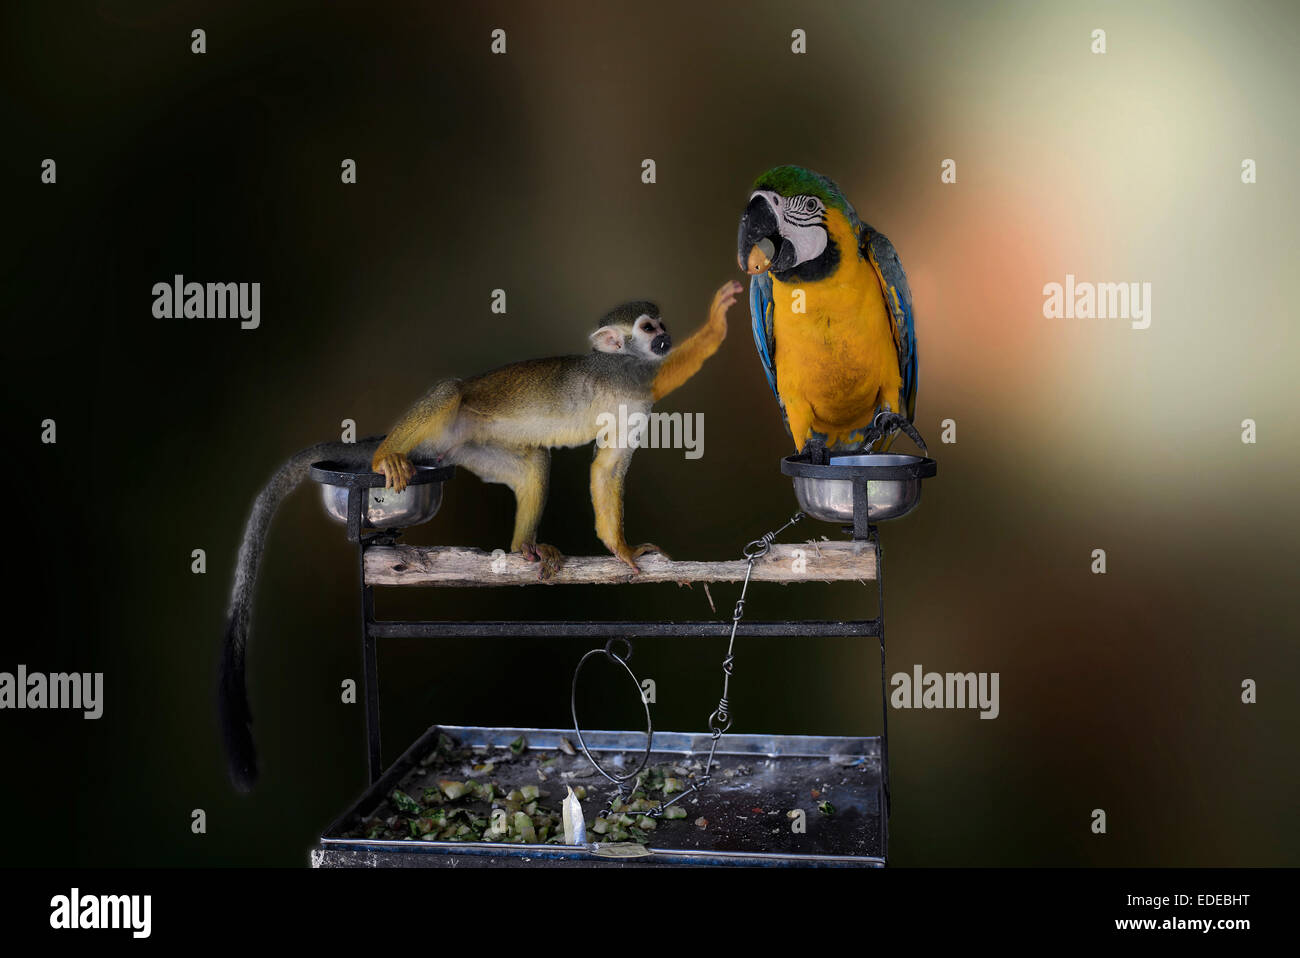 Mischievous monkey stealing food from a startled Macaw. Funny animals. A set of three sequences - Stock Image